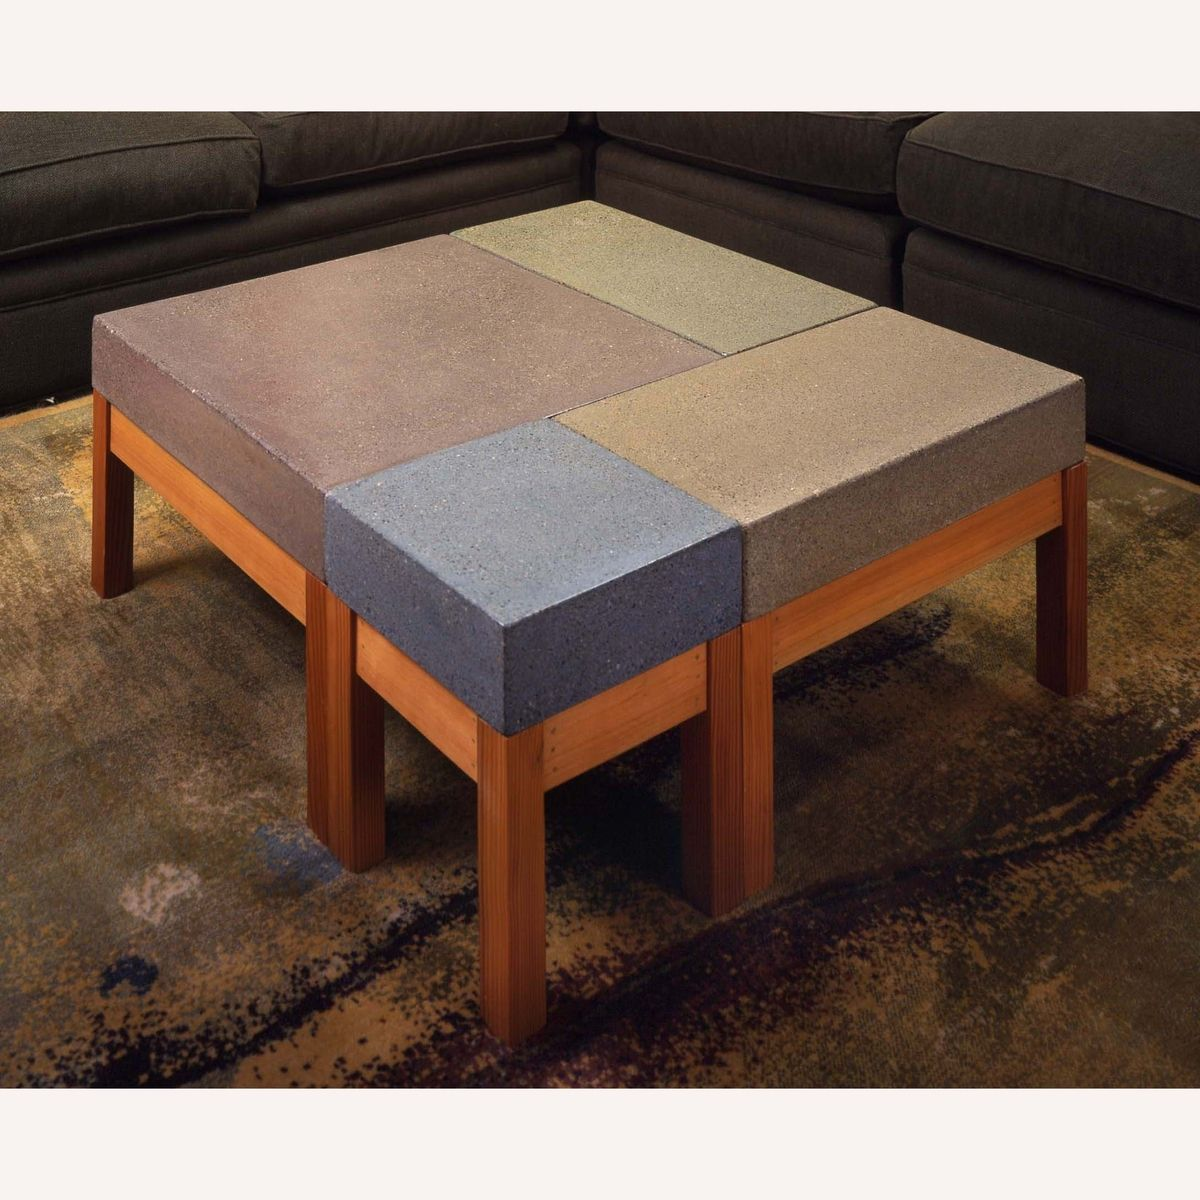 Hand Crafted Concrete Modular Coffee Table By Bohemian Stoneworks